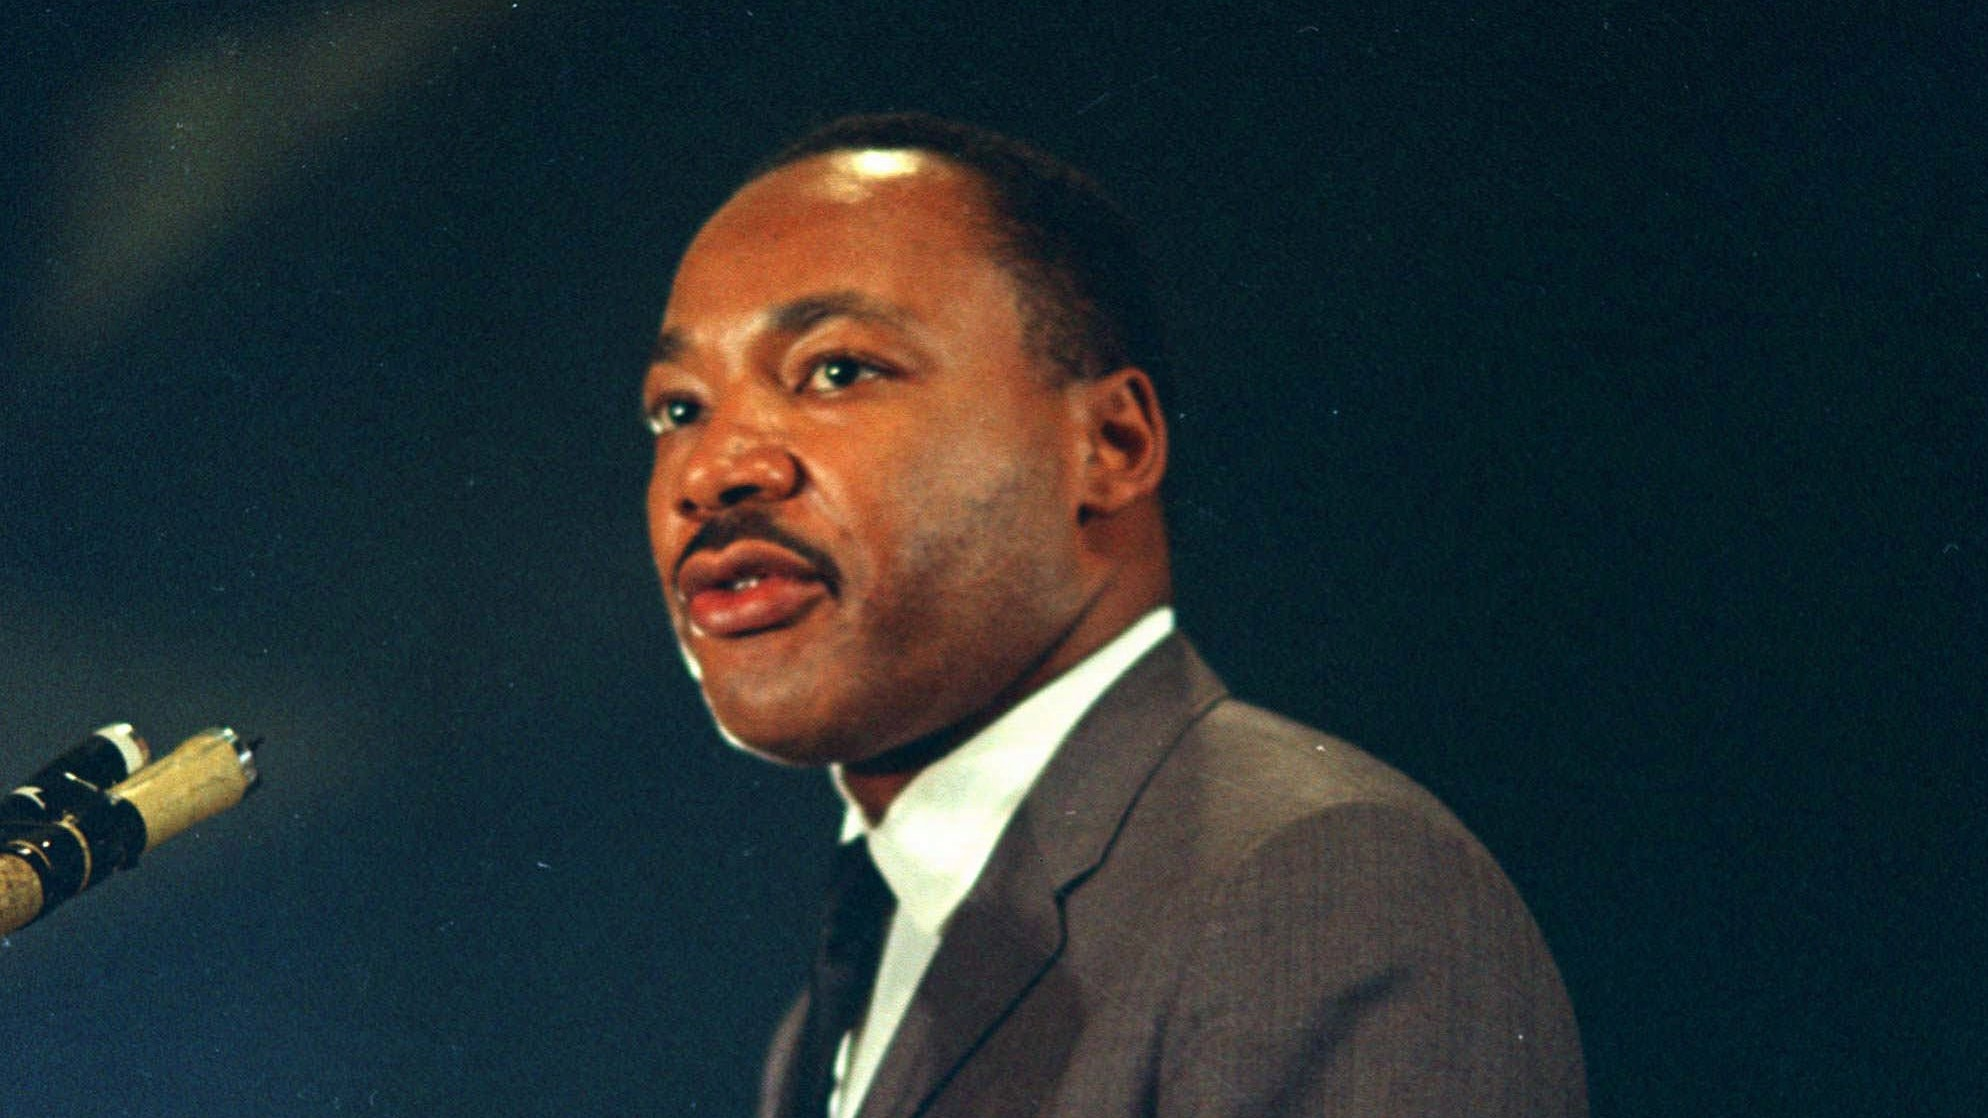 Martin Luther King Jr Was Decades Ahead Of His Time In Advocating